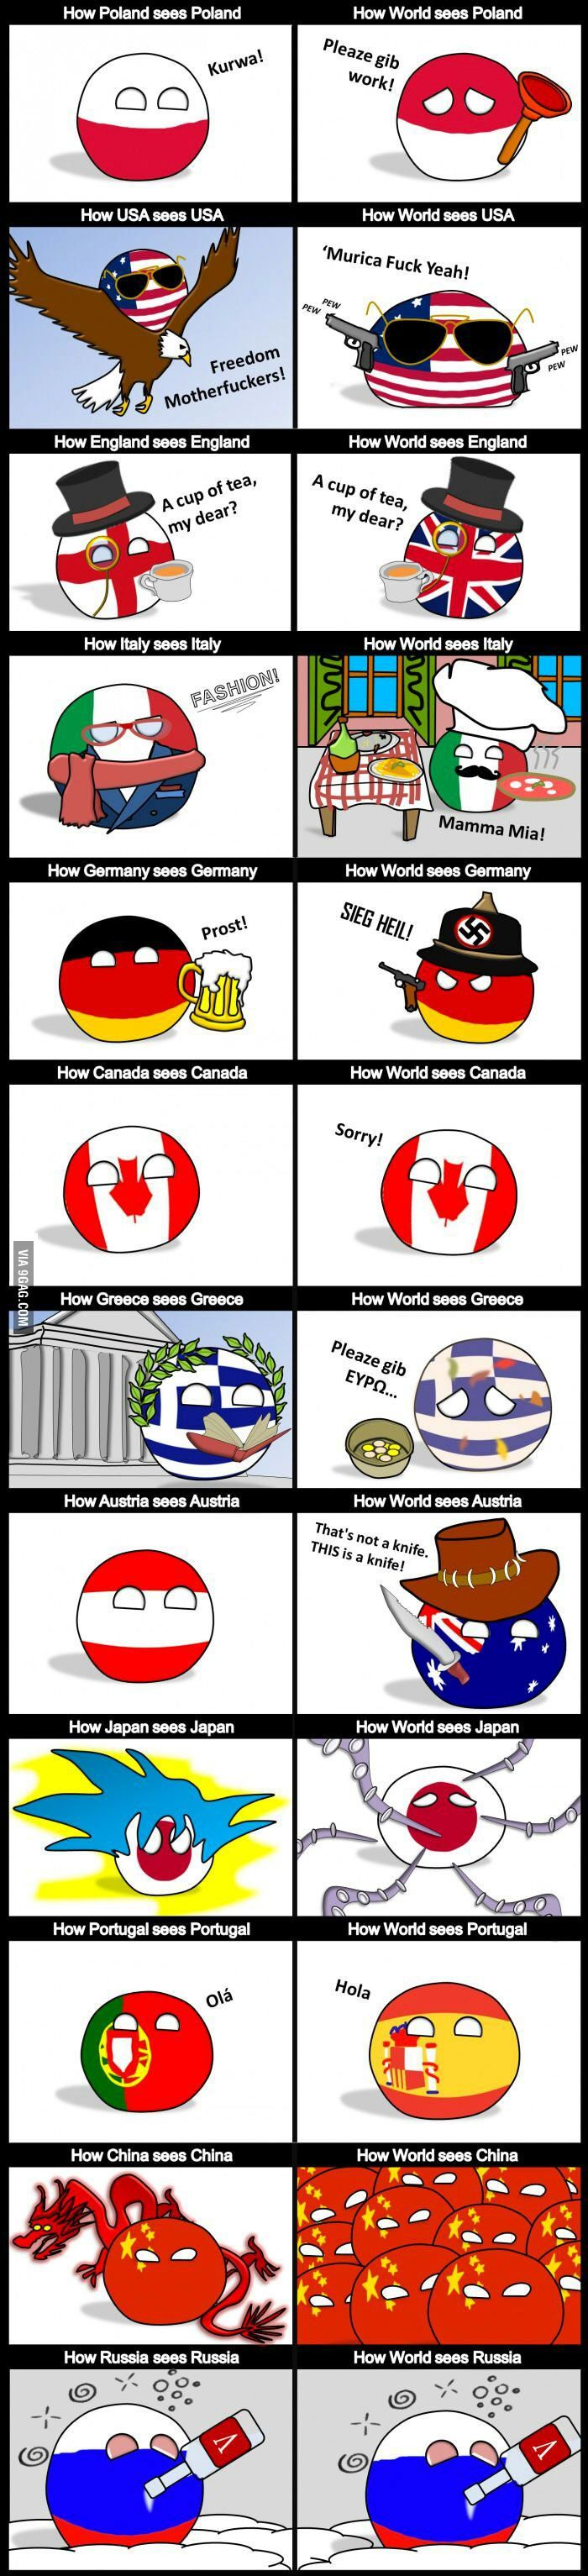 Polandball - Countryball *How countries think they are compared to how the world see them.* ( Poland, USA, England, Italy, Germaney, Canada, Greece, Austria, Japan, Portugal, China, Russia )